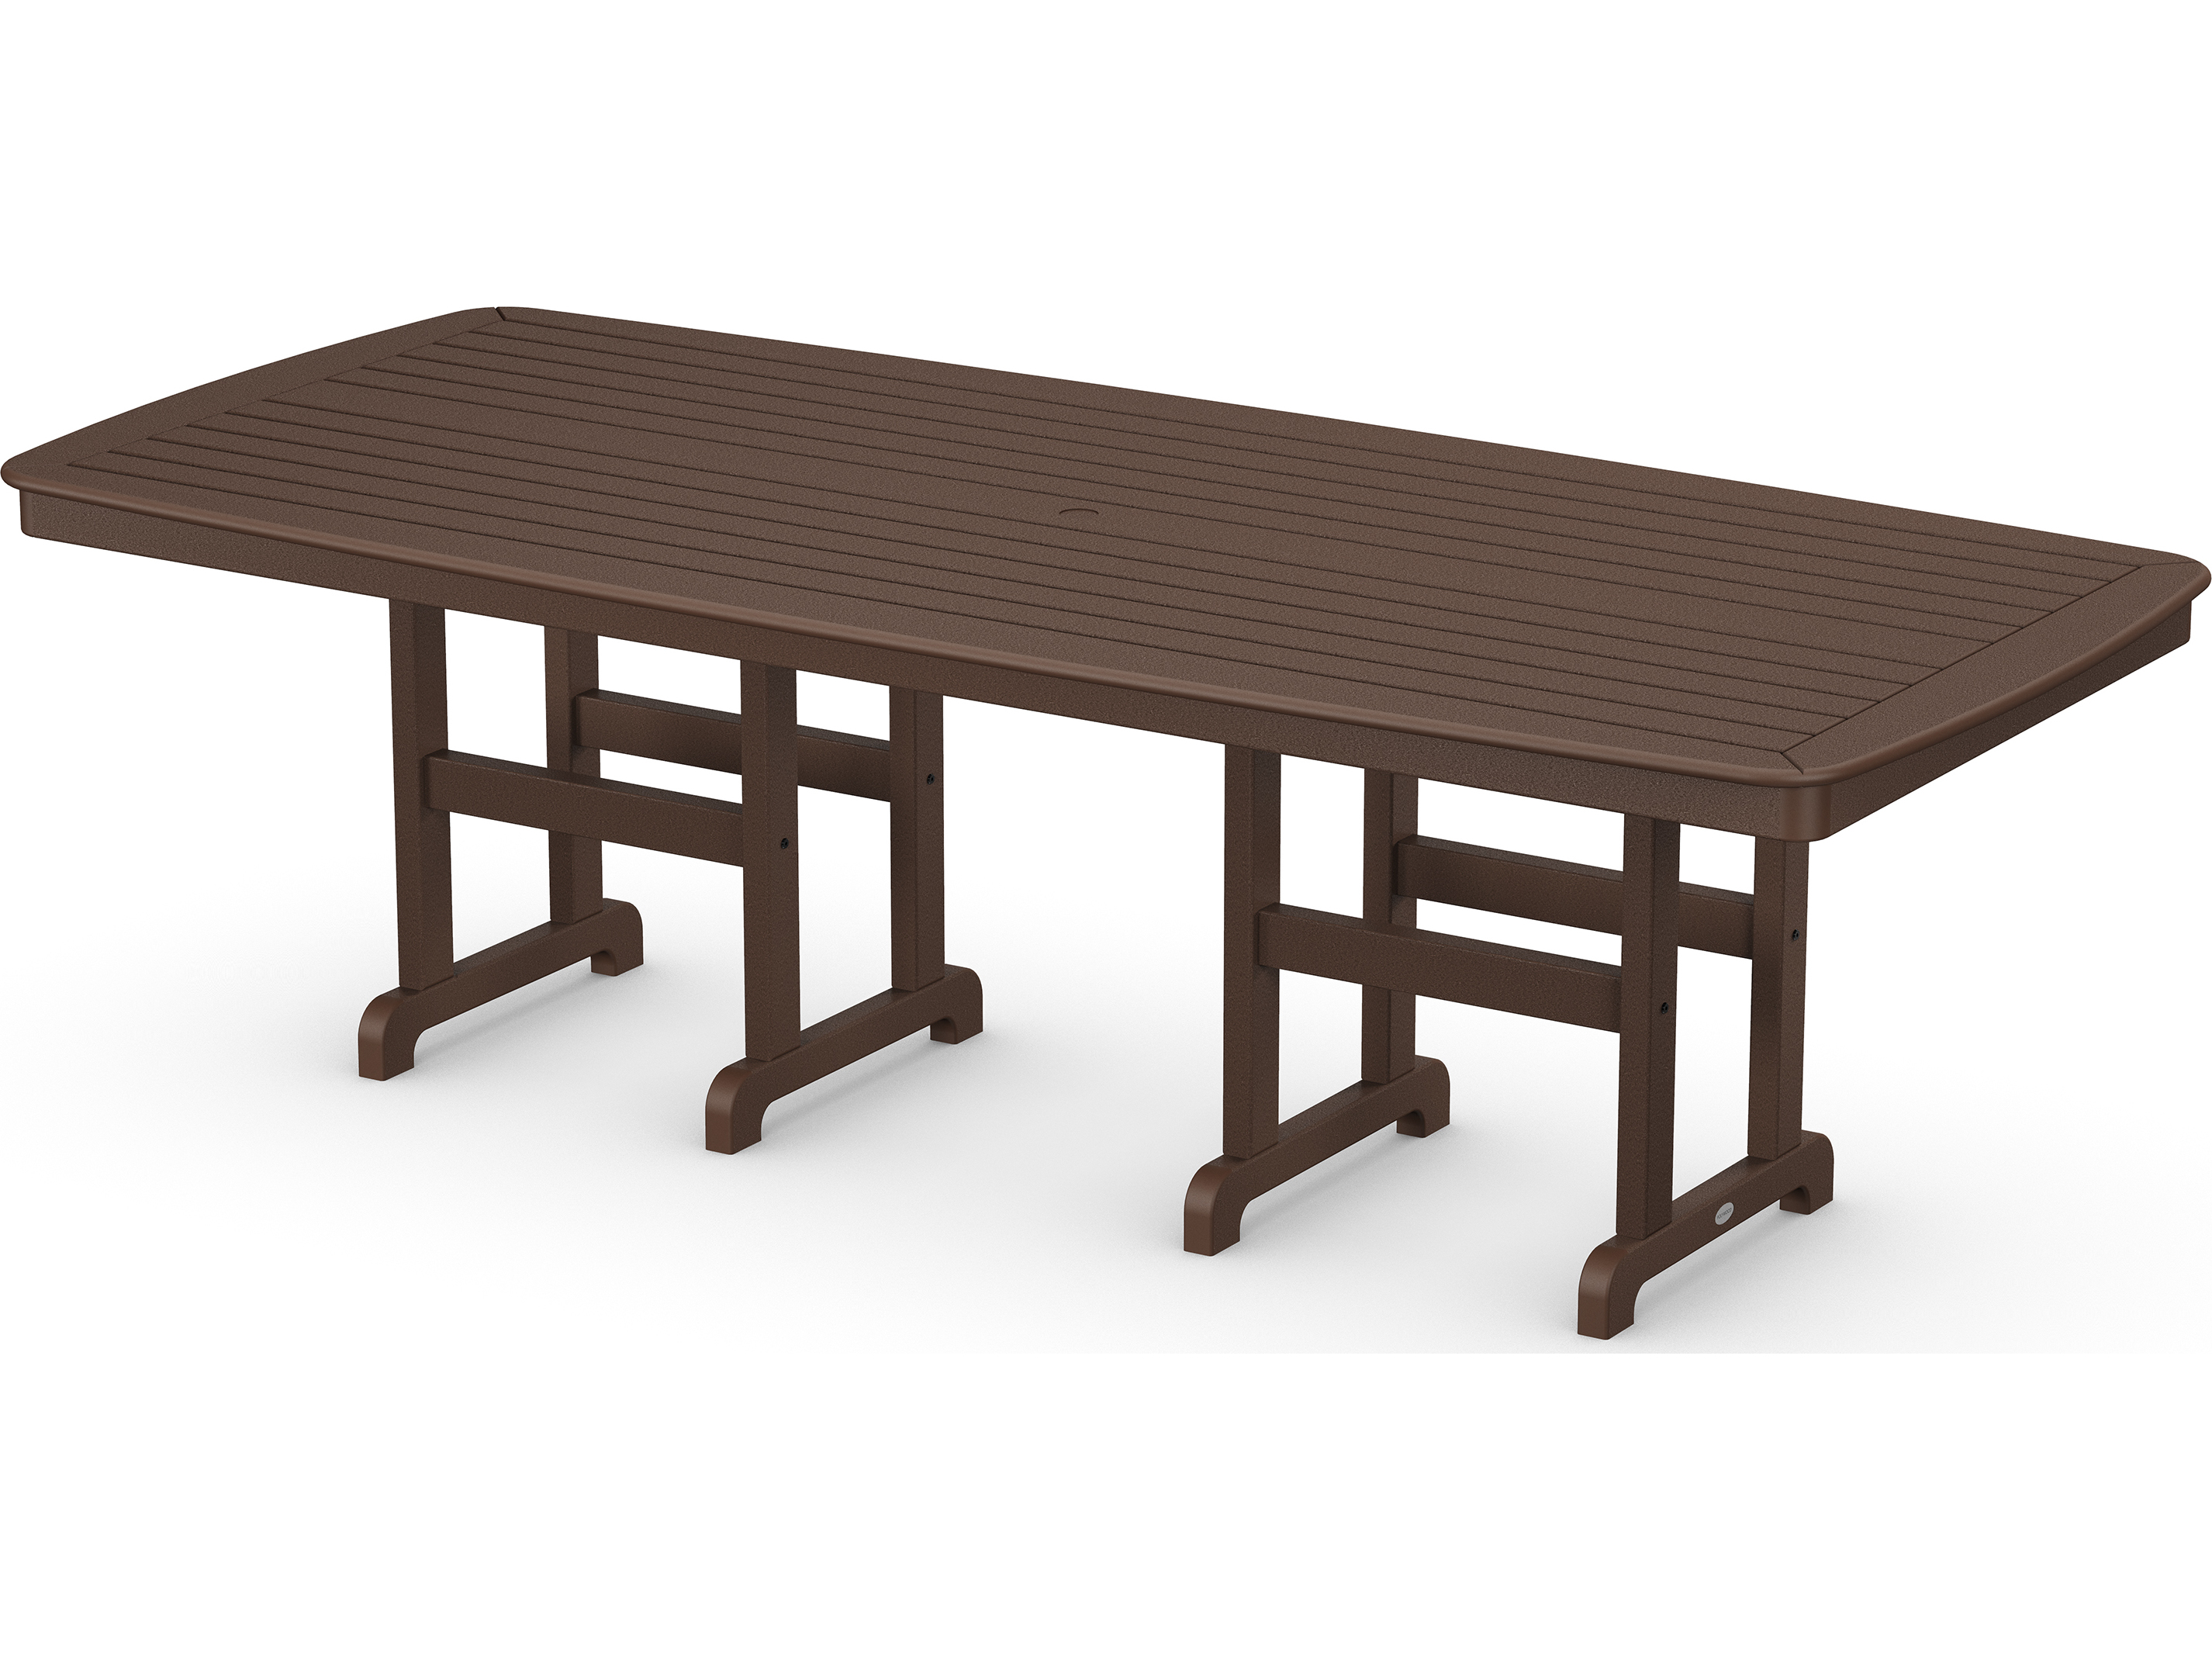 POLYWOOD Nautical Recycled Plastic 96 x 44 Dining Table